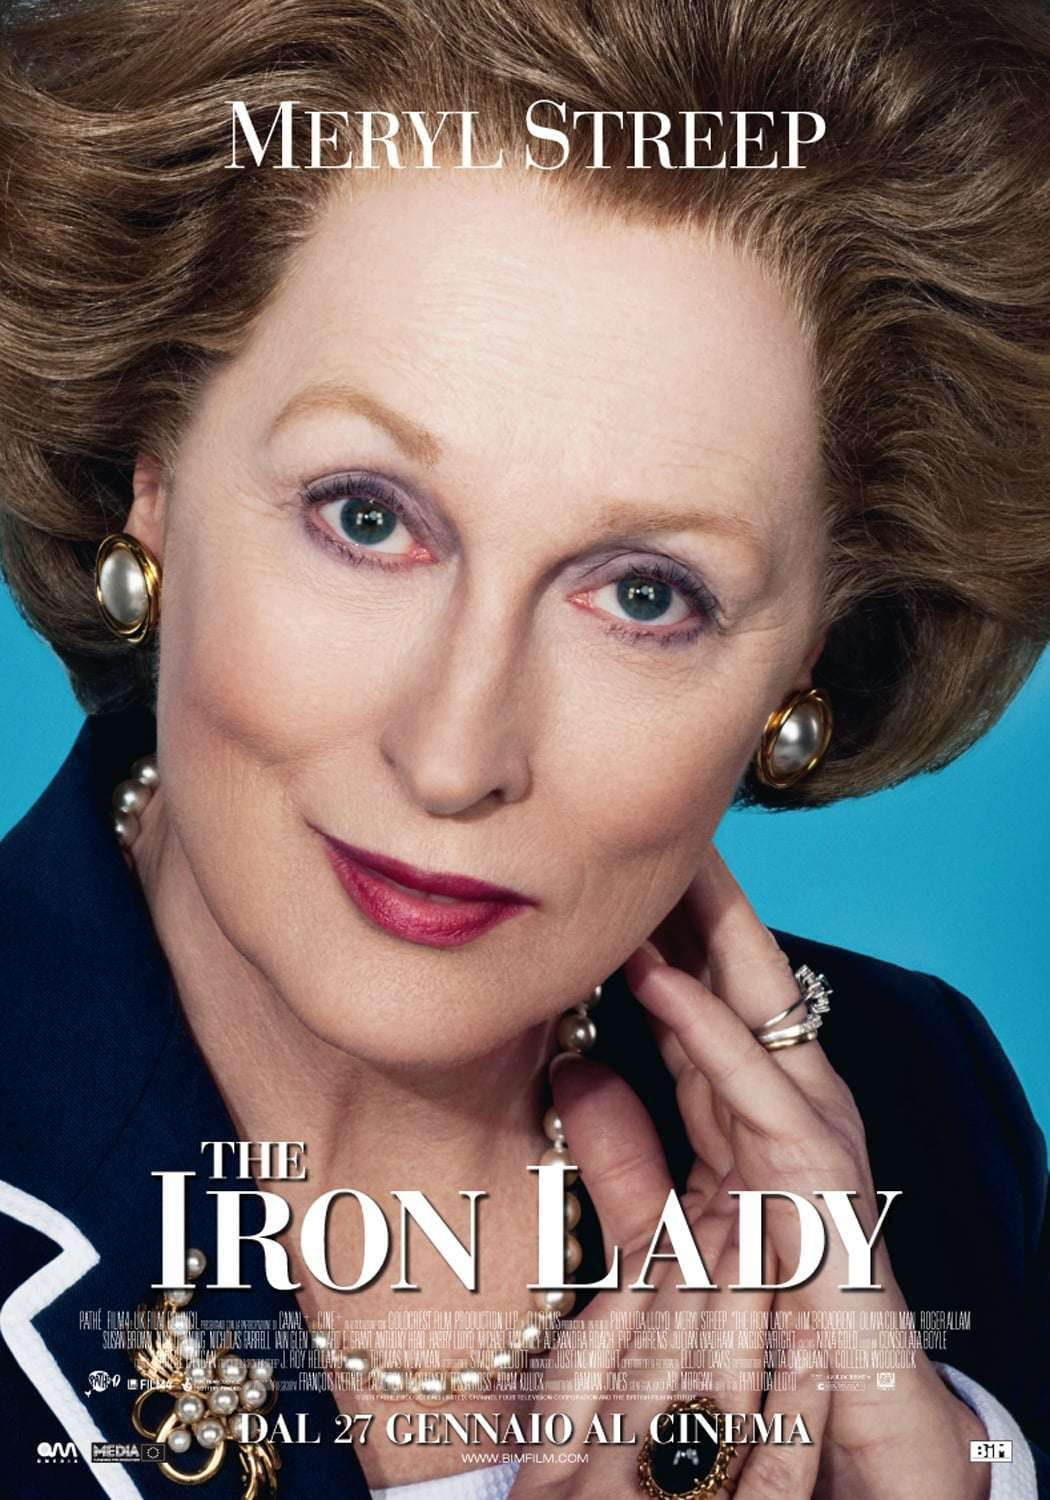 The Iron Lady Movie Watch Online Find Where To Stream Full Movie In Hd 24reel